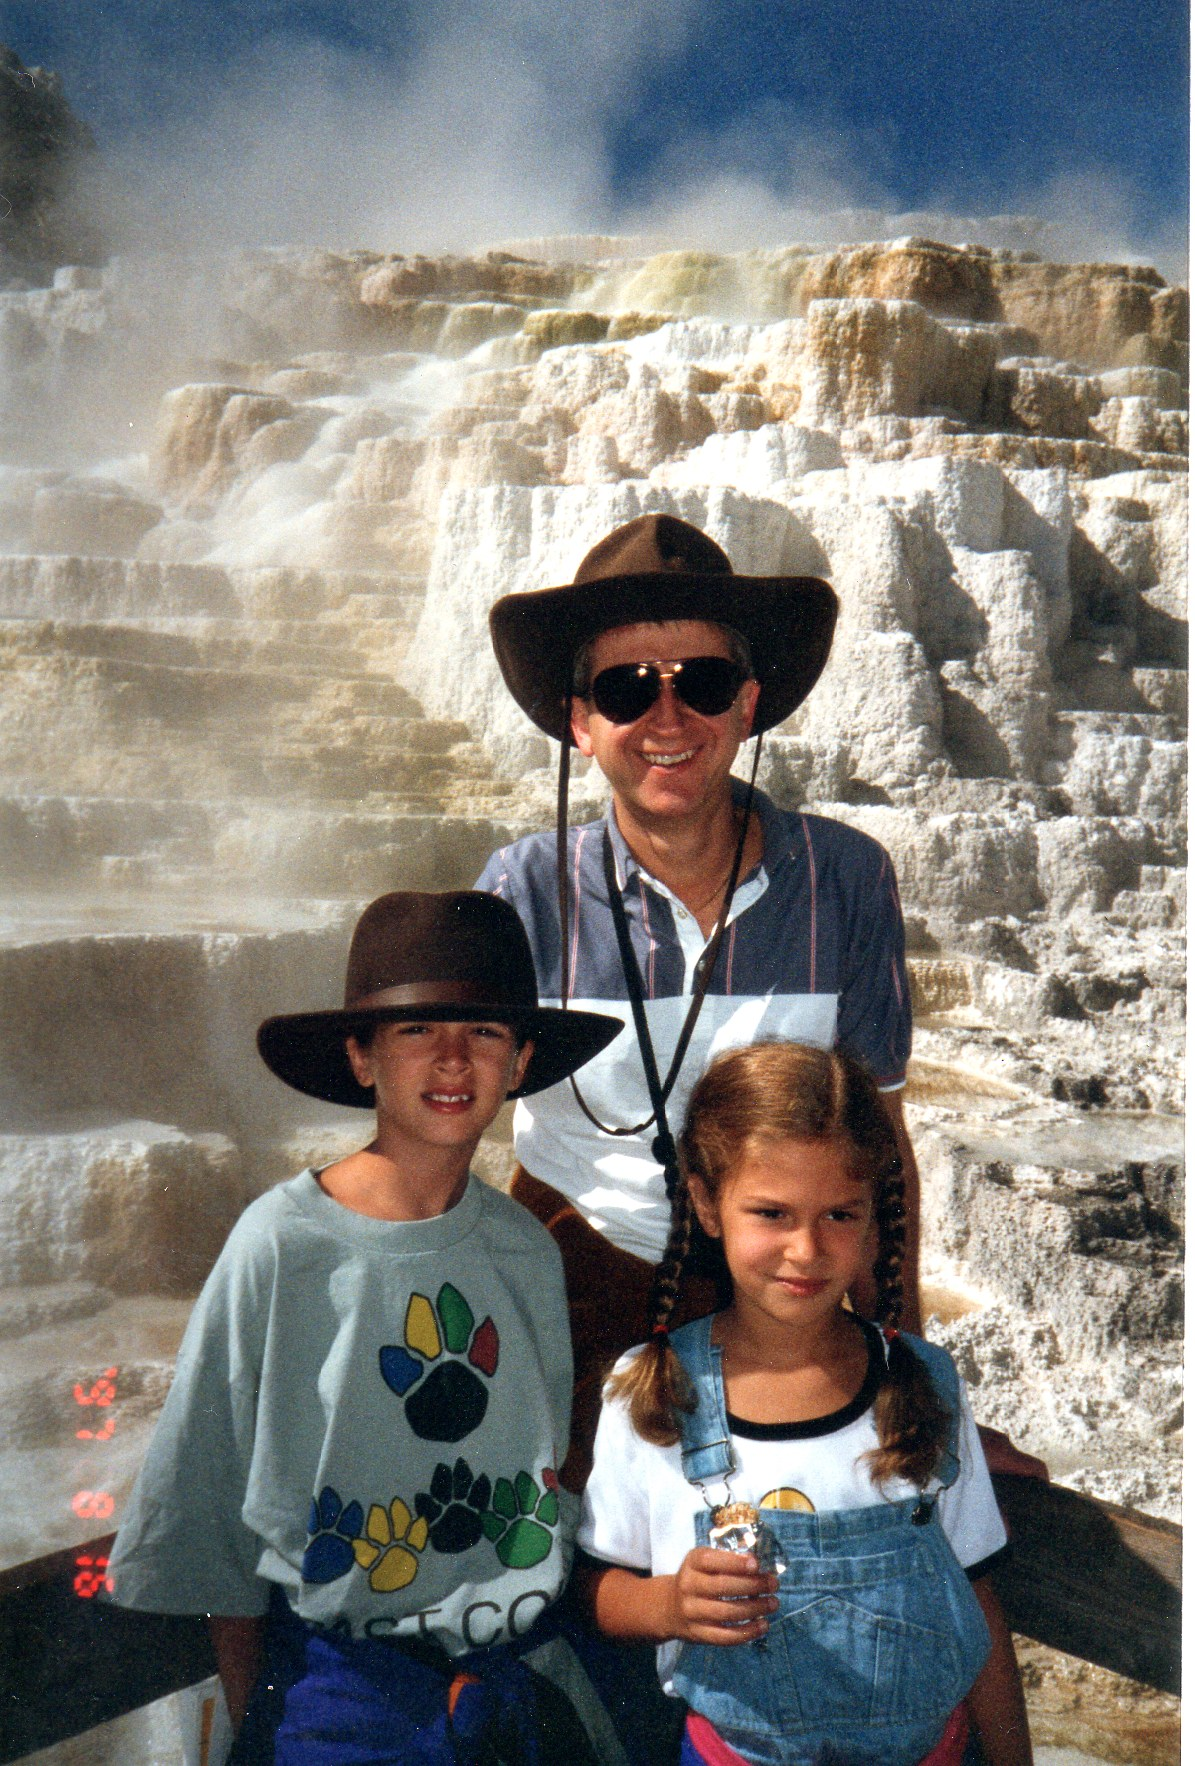 My dad and his two daughters in Yellowstone. This would be the trip where I begged and pleaded to use his video camera... (I am the dork in the cowboy hat!)